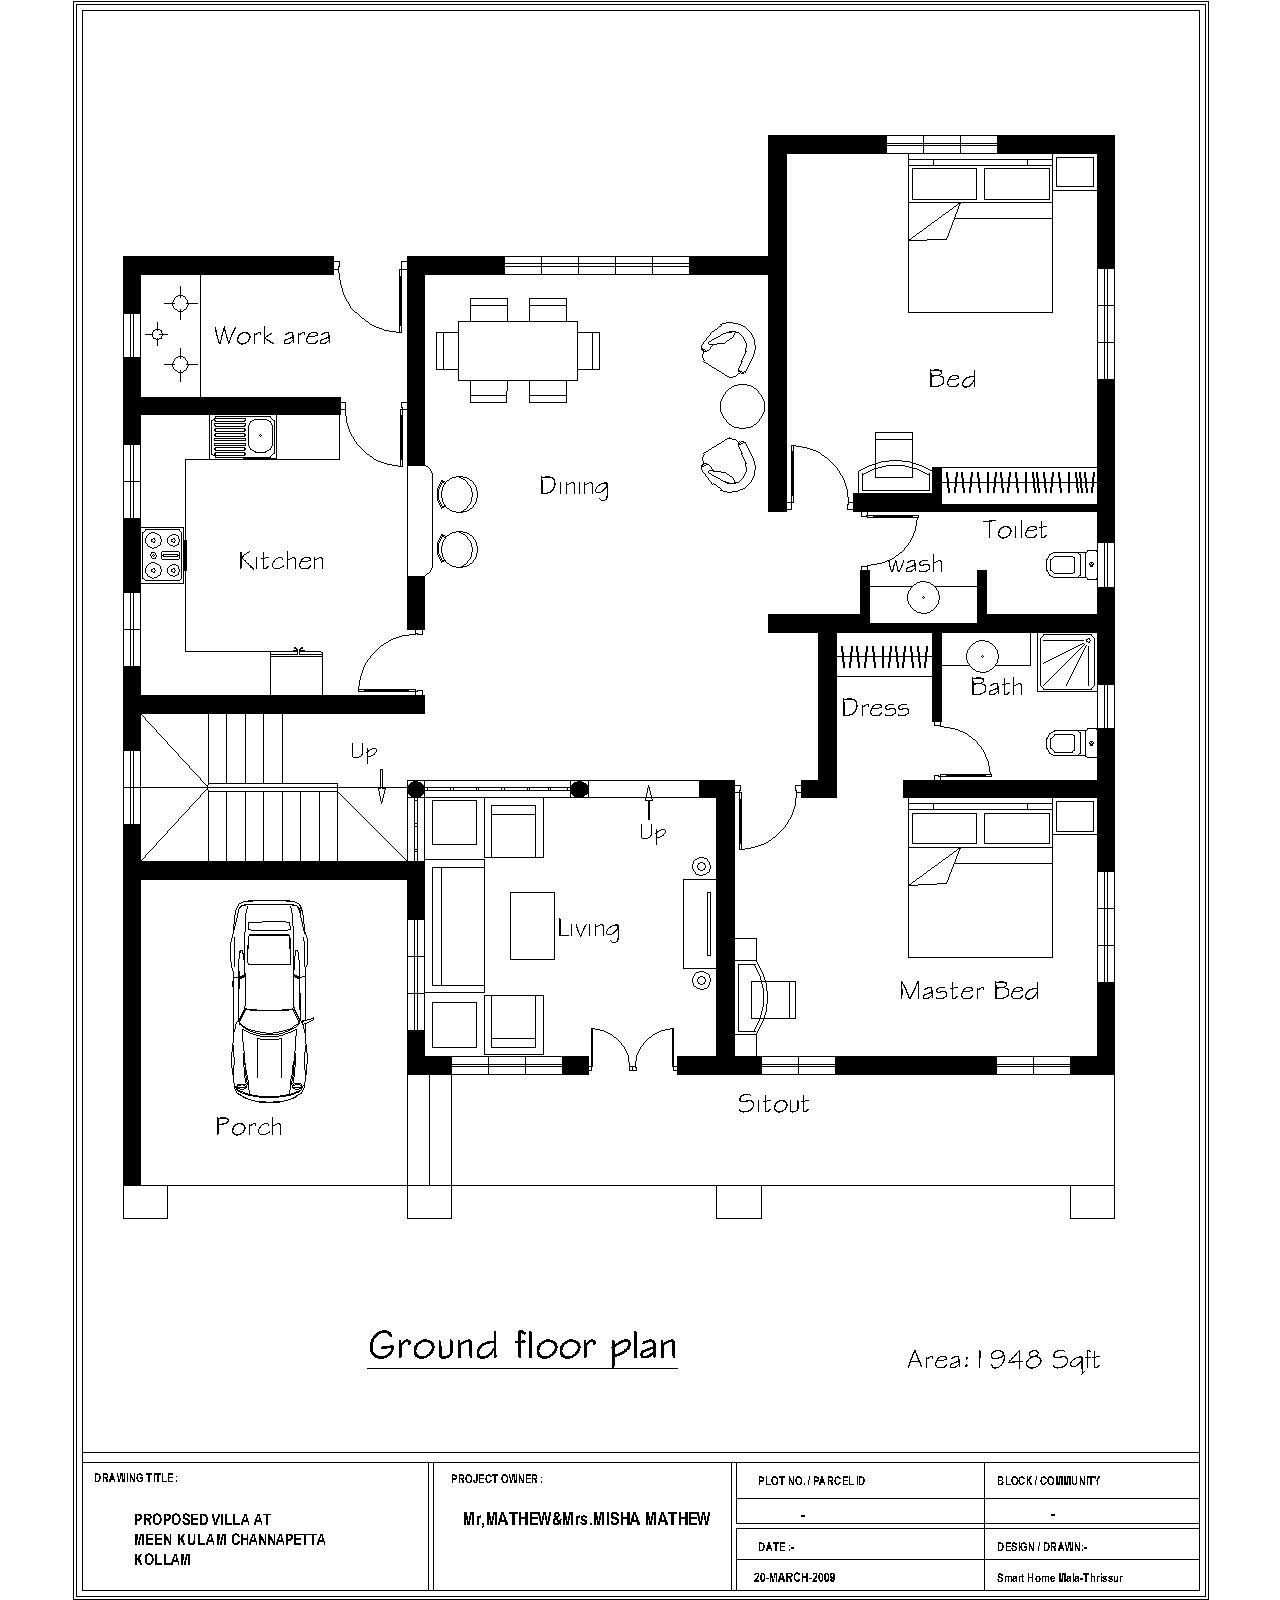 Three bedroom floor plans bedroom furniture high resolution Floor plan of a 3 bedroom house